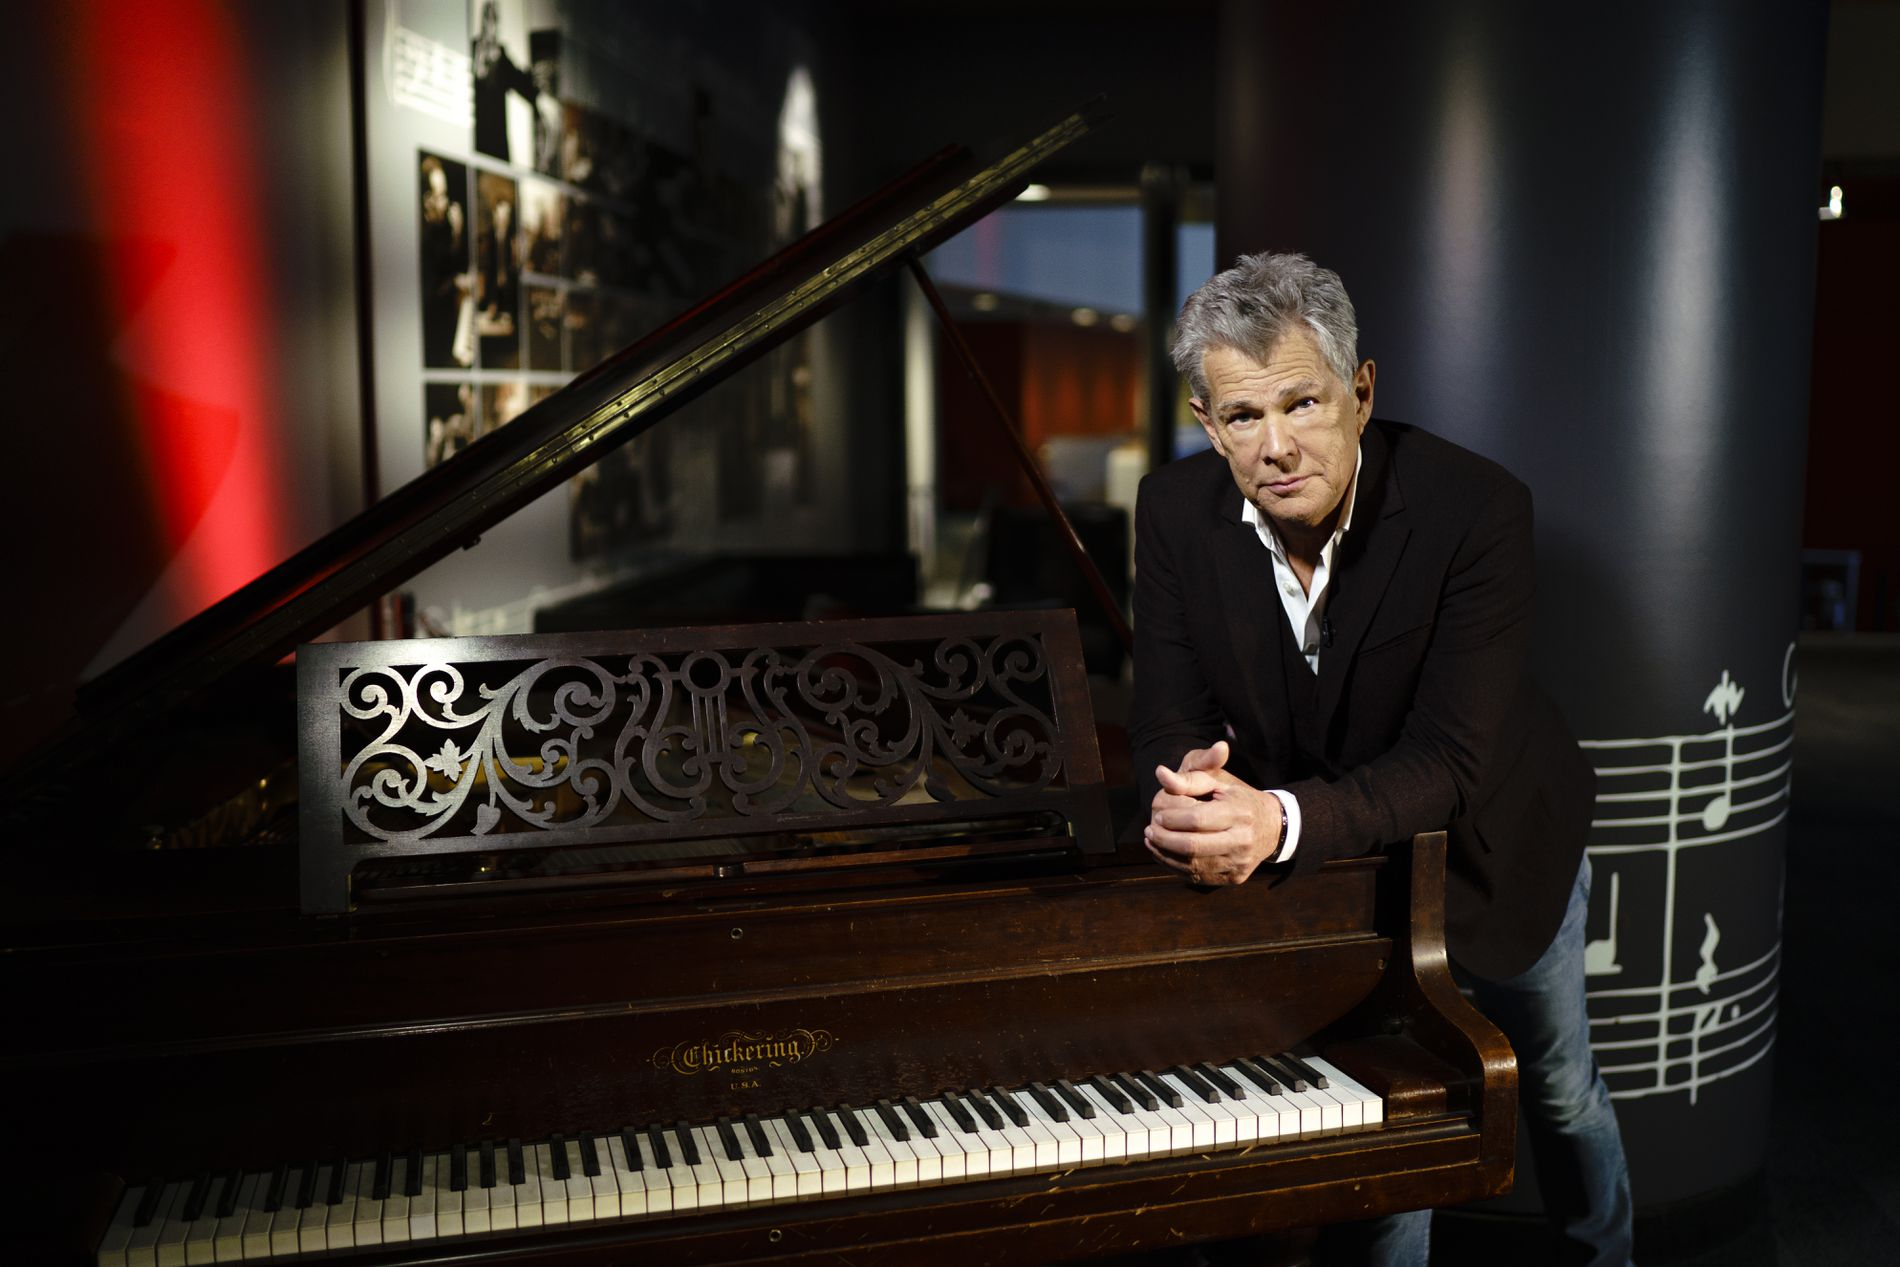 Musical legend David Foster on launching his first-ever tour of Canada